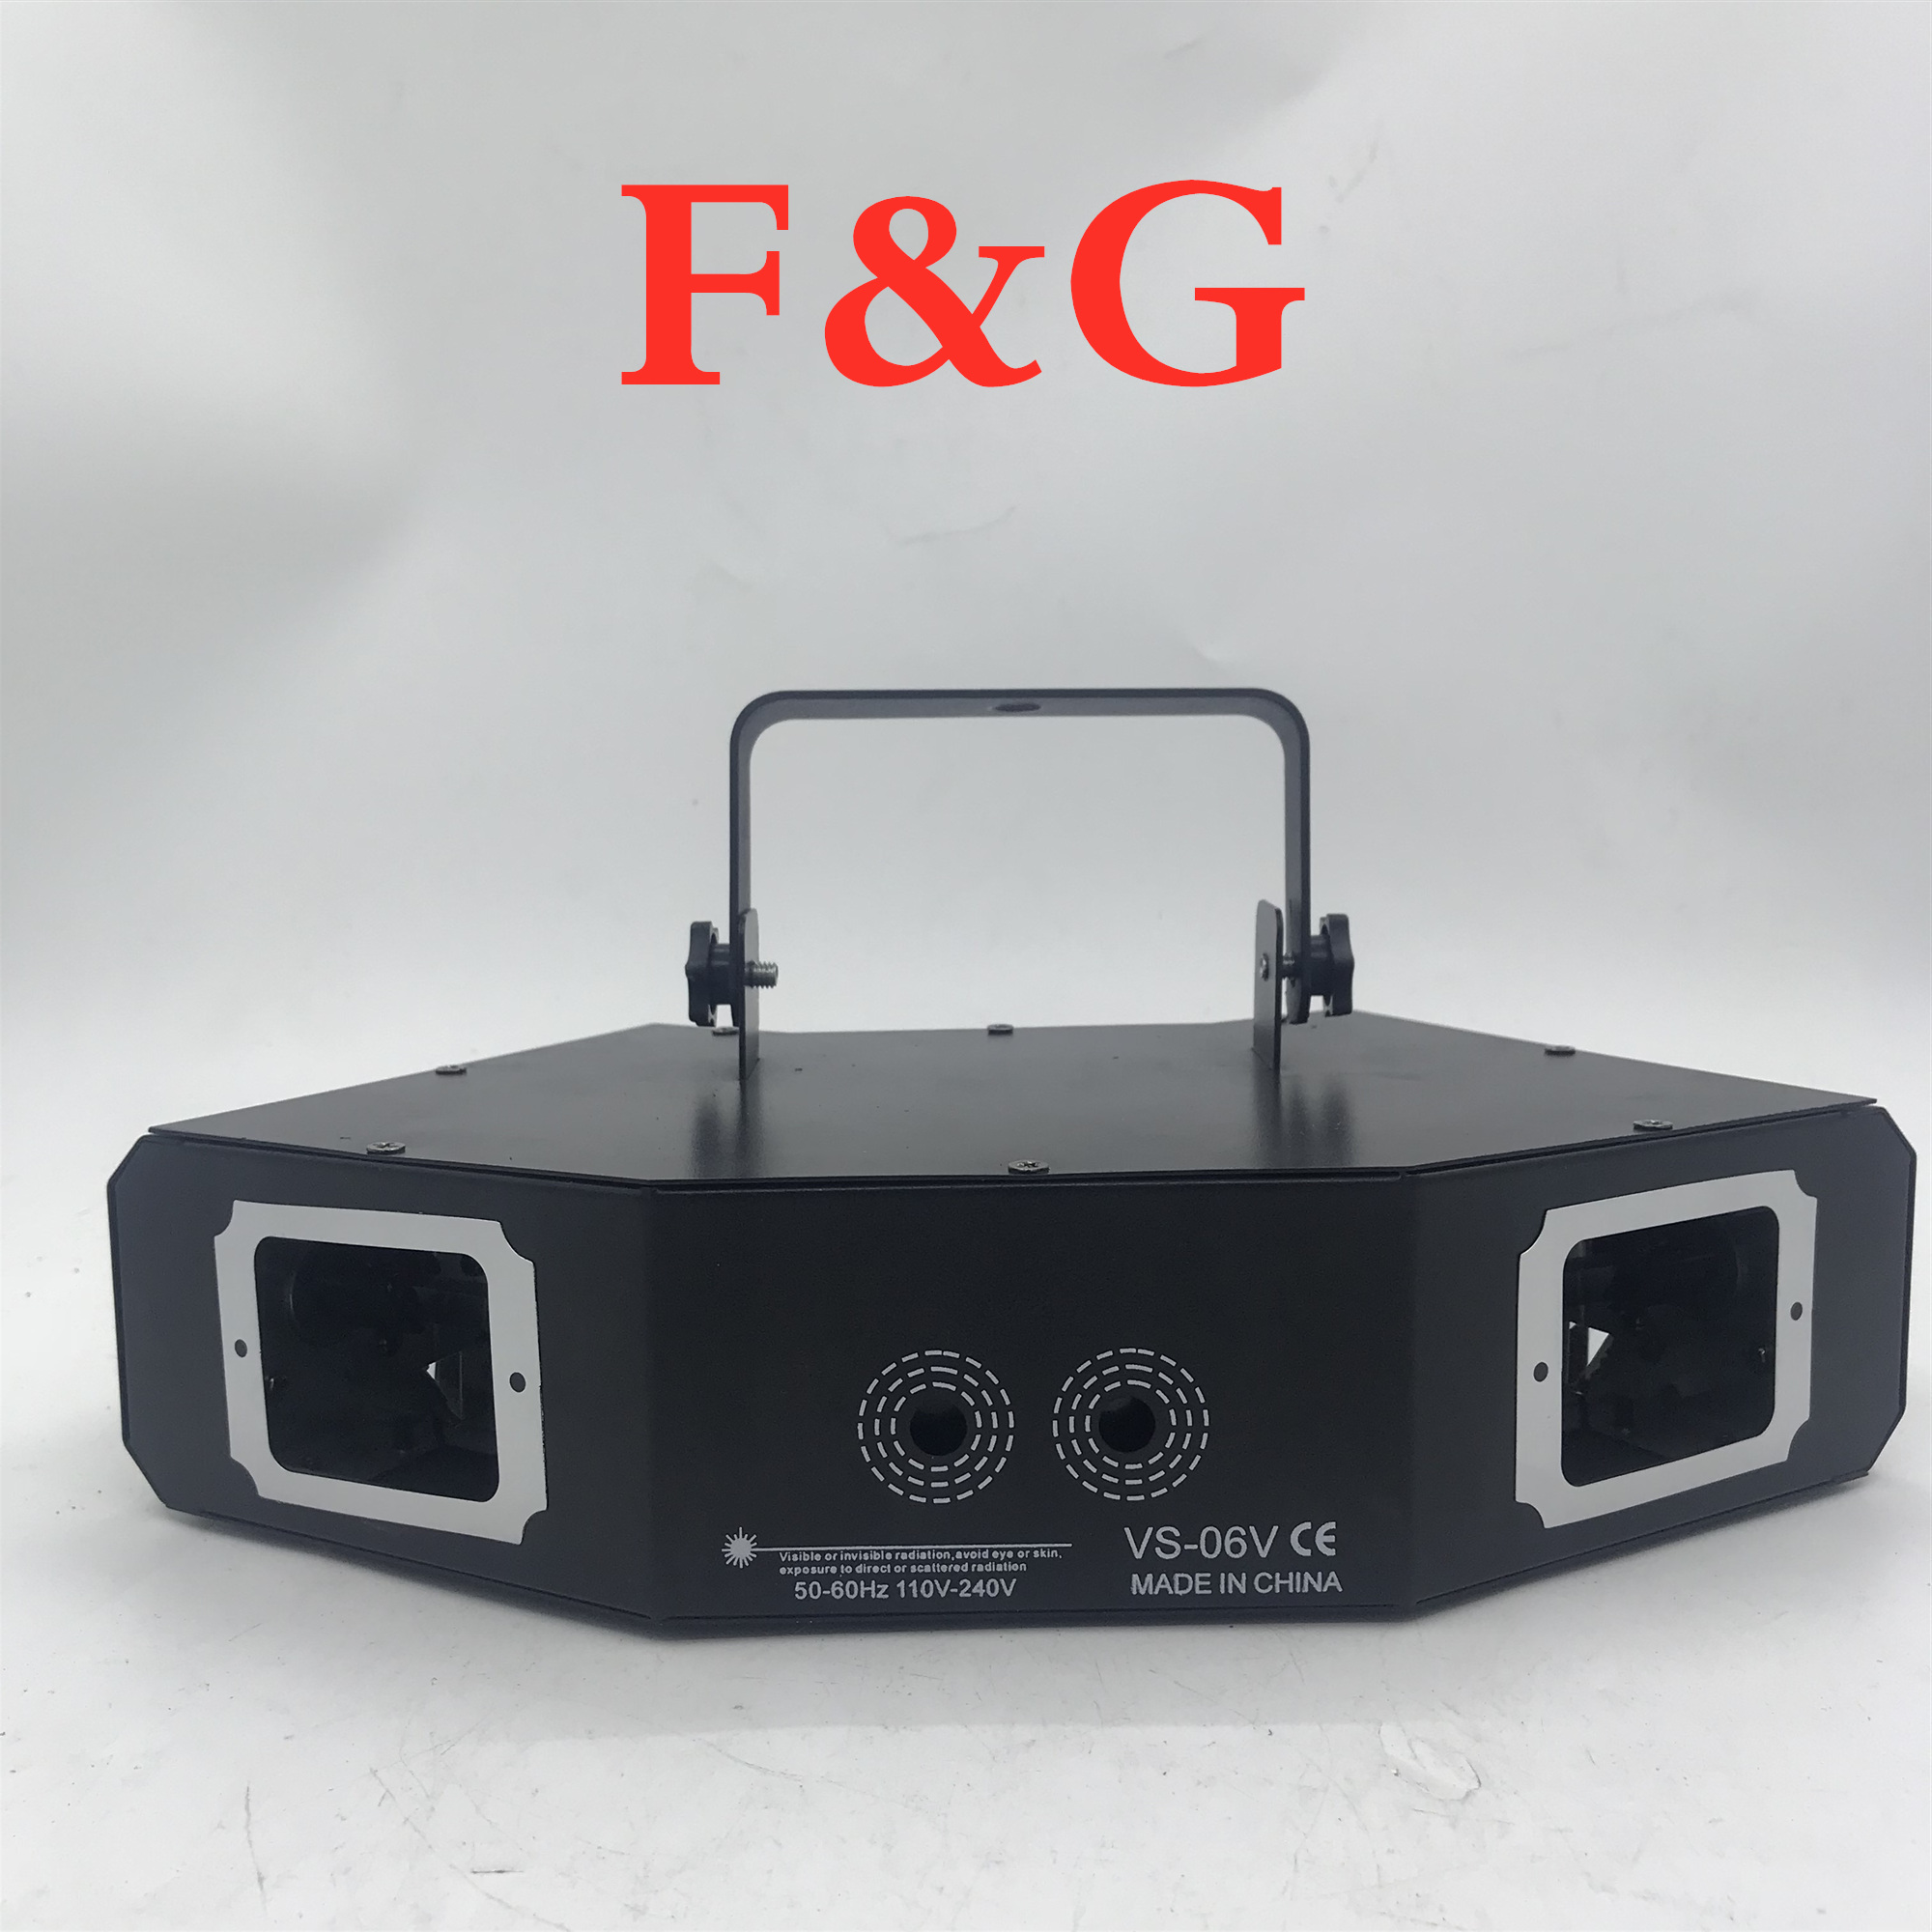 F&Gdisco Laser Light RGB Full Color Beam Light Dj Effect Projector Scanner Laser Stage Lighting